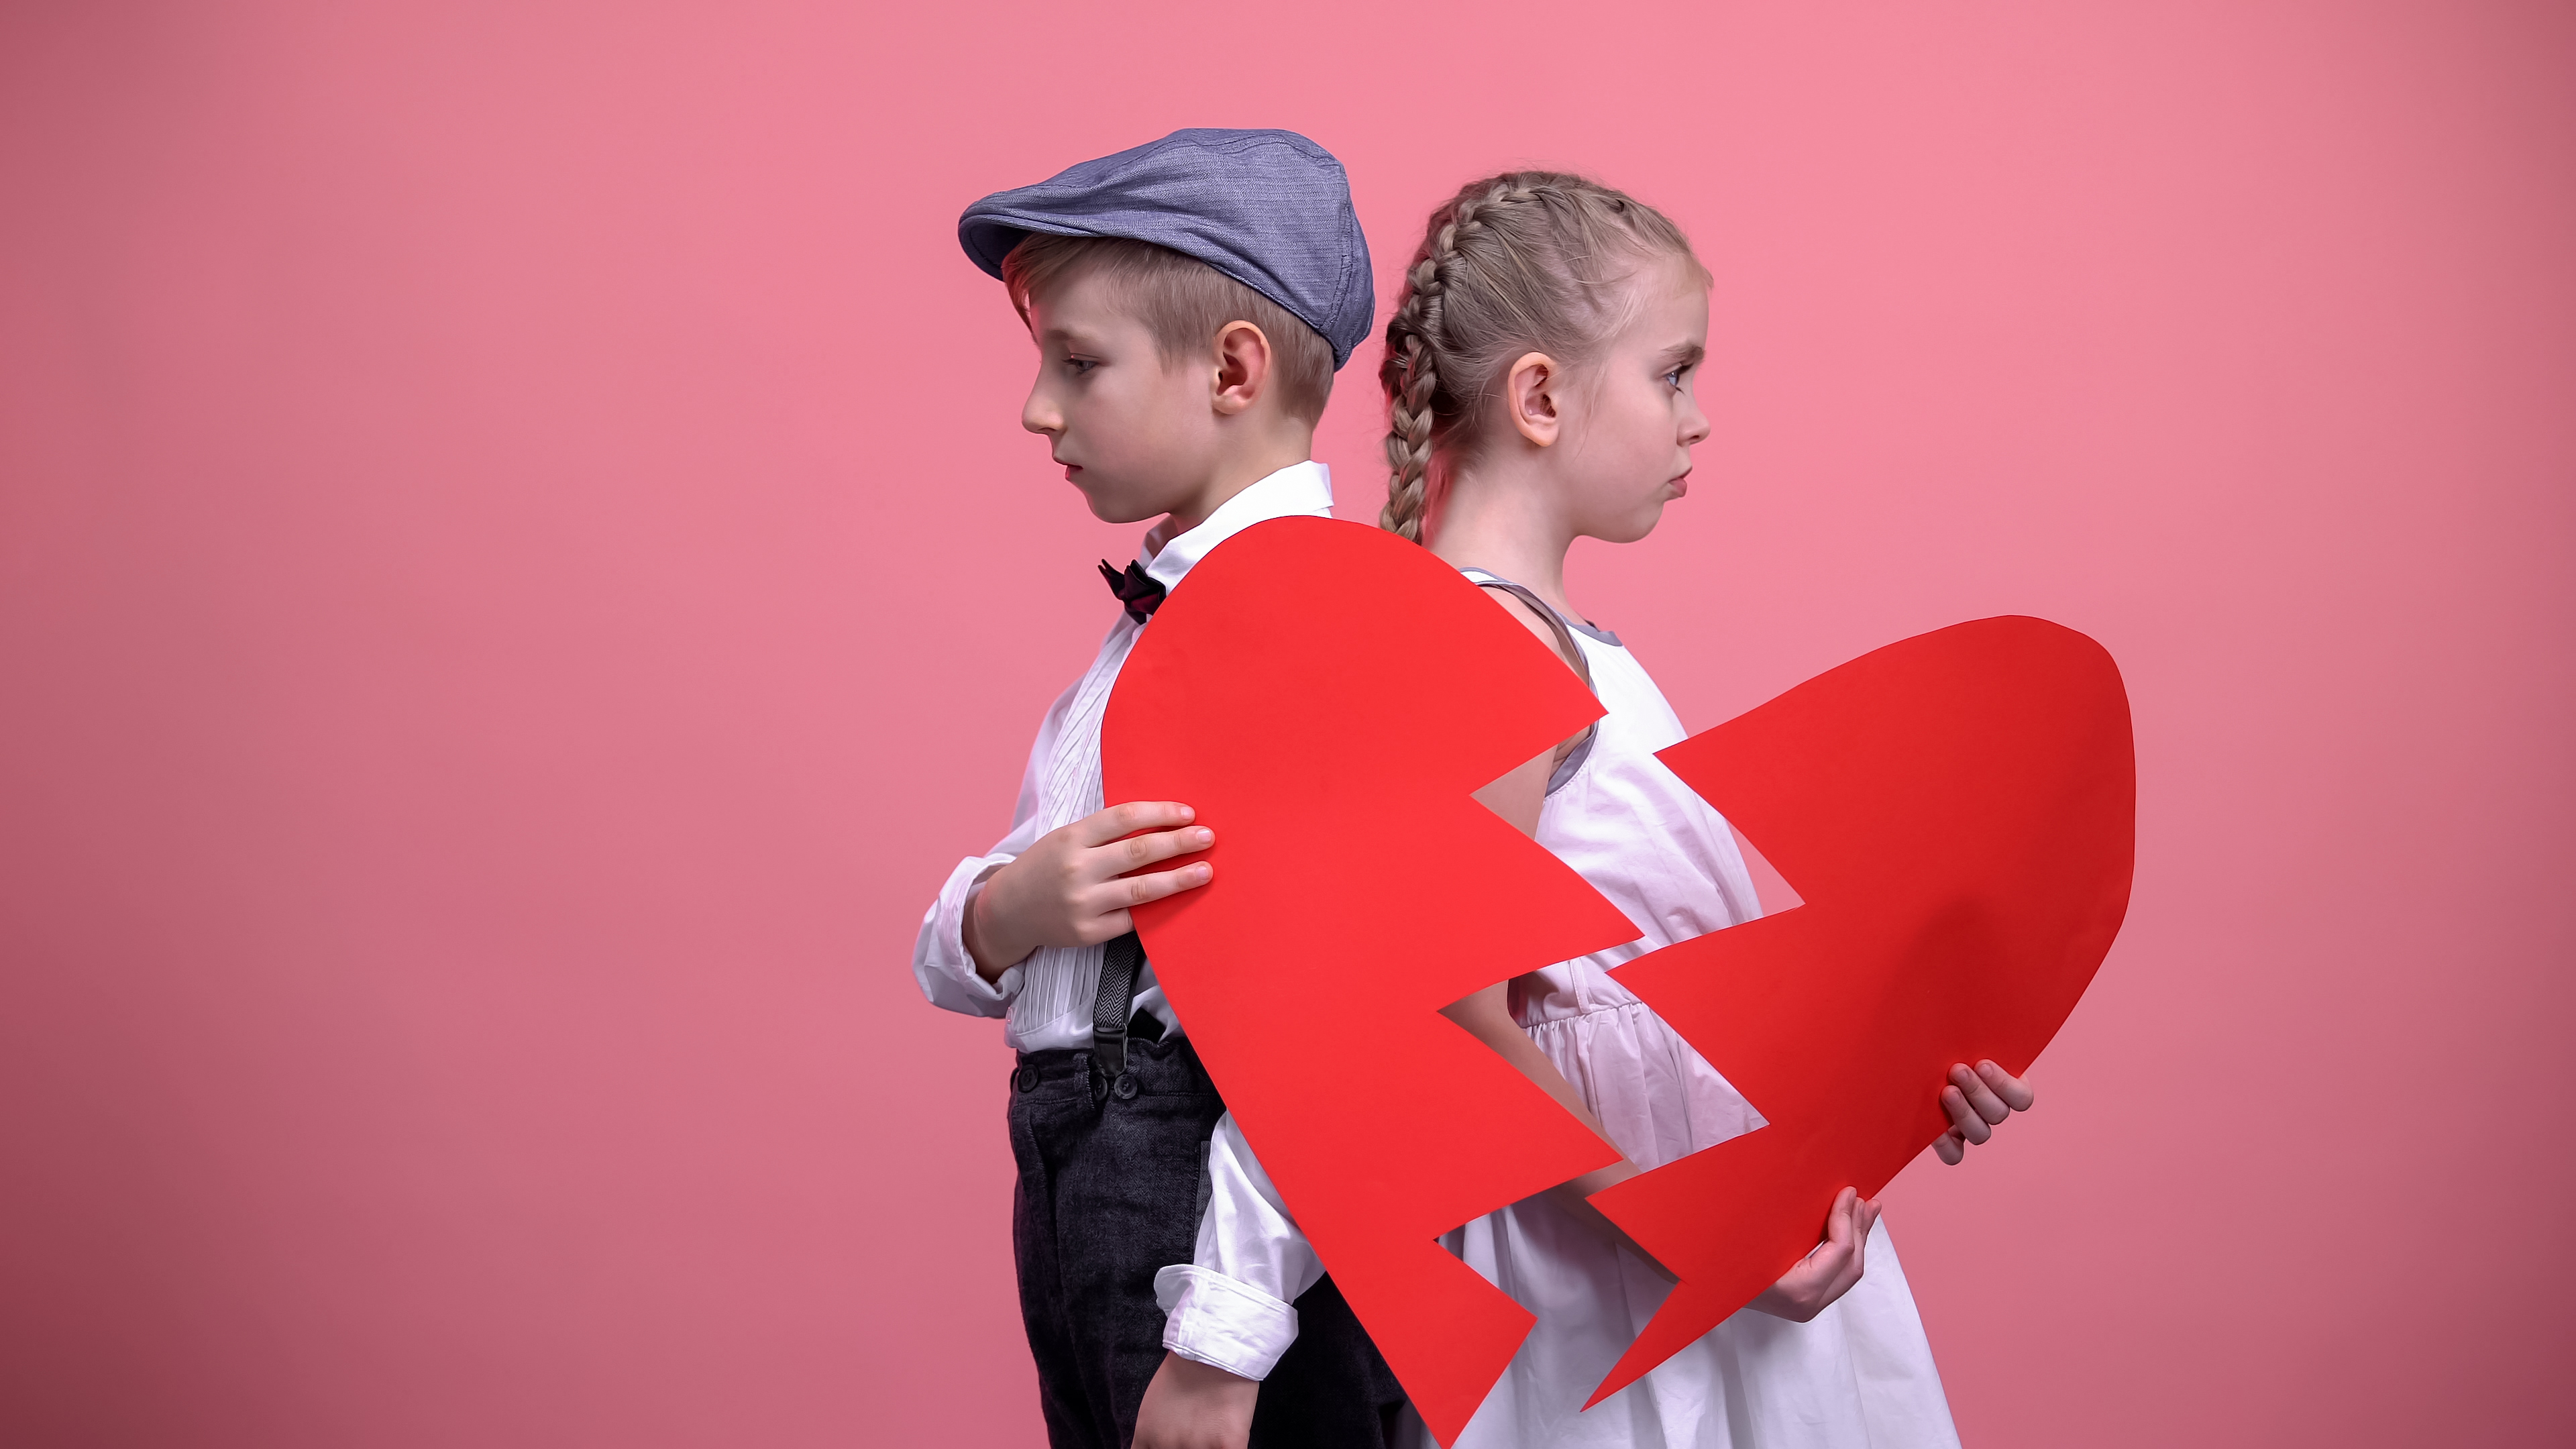 Sad child couple holding broken pieces of a red heart